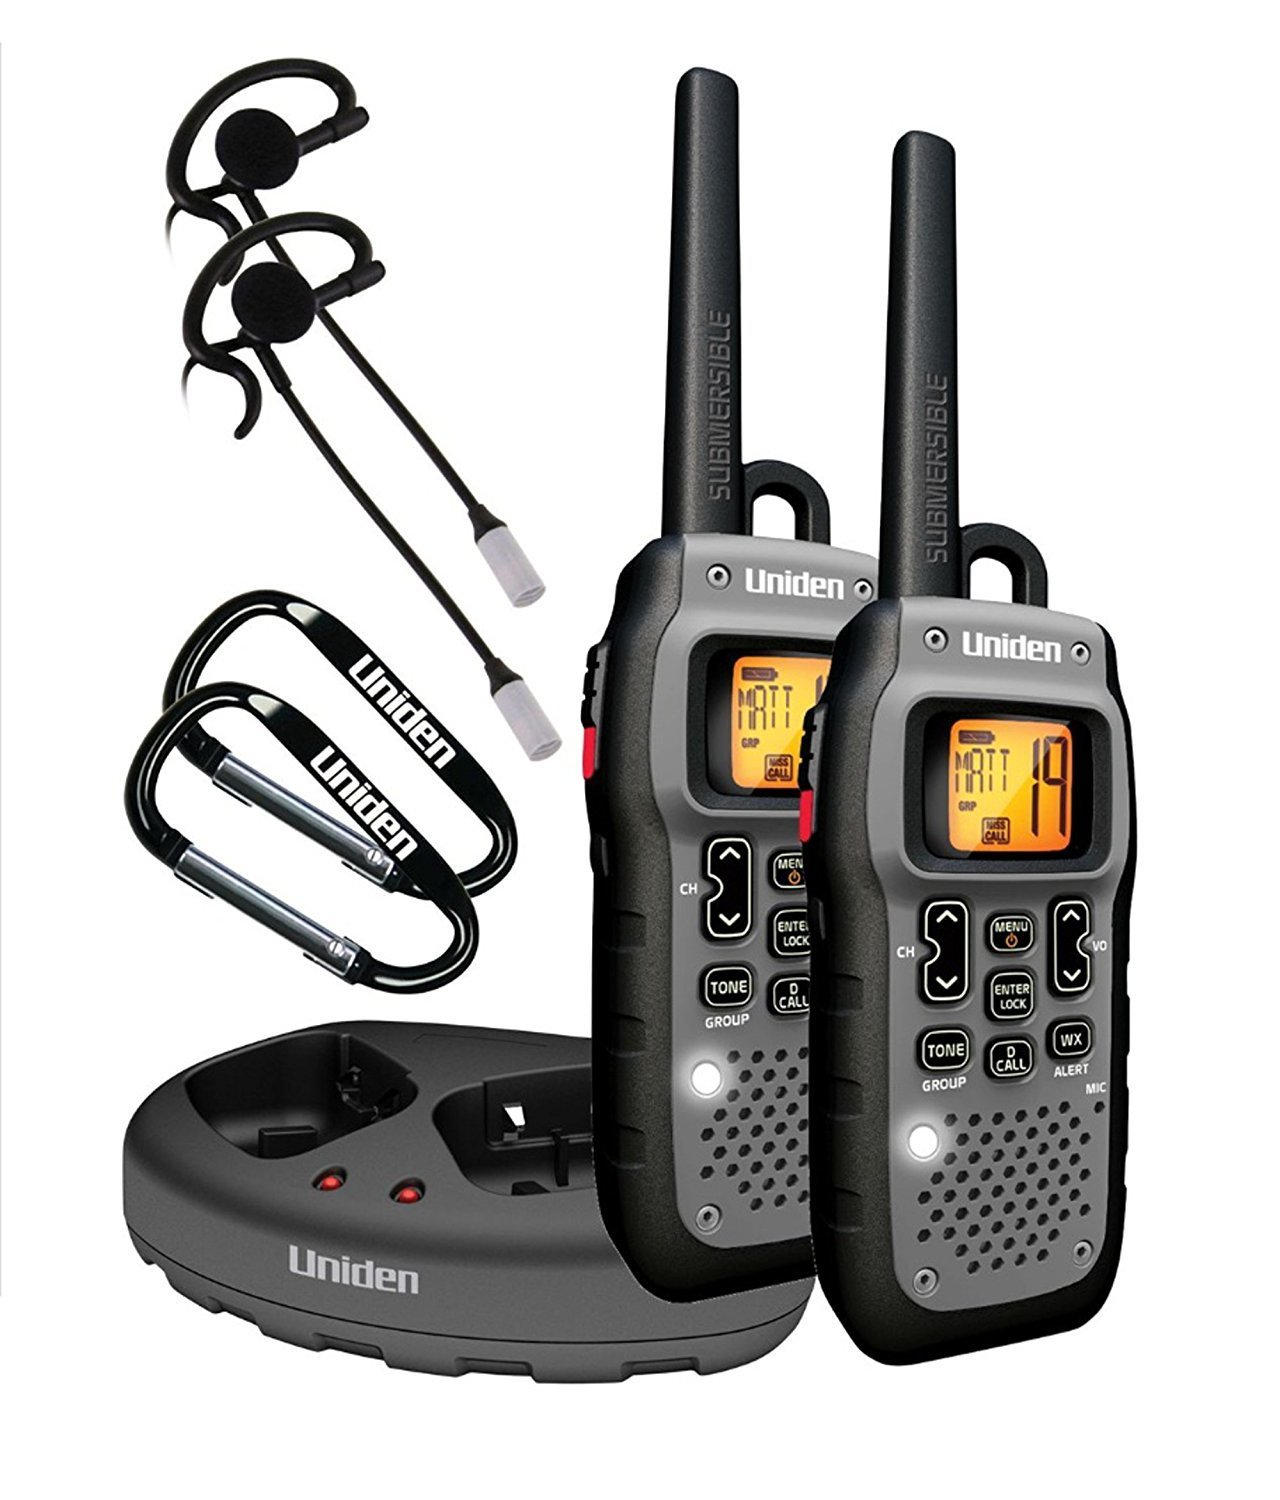 Uniden Submersible 50 Mile Two-Way Radios